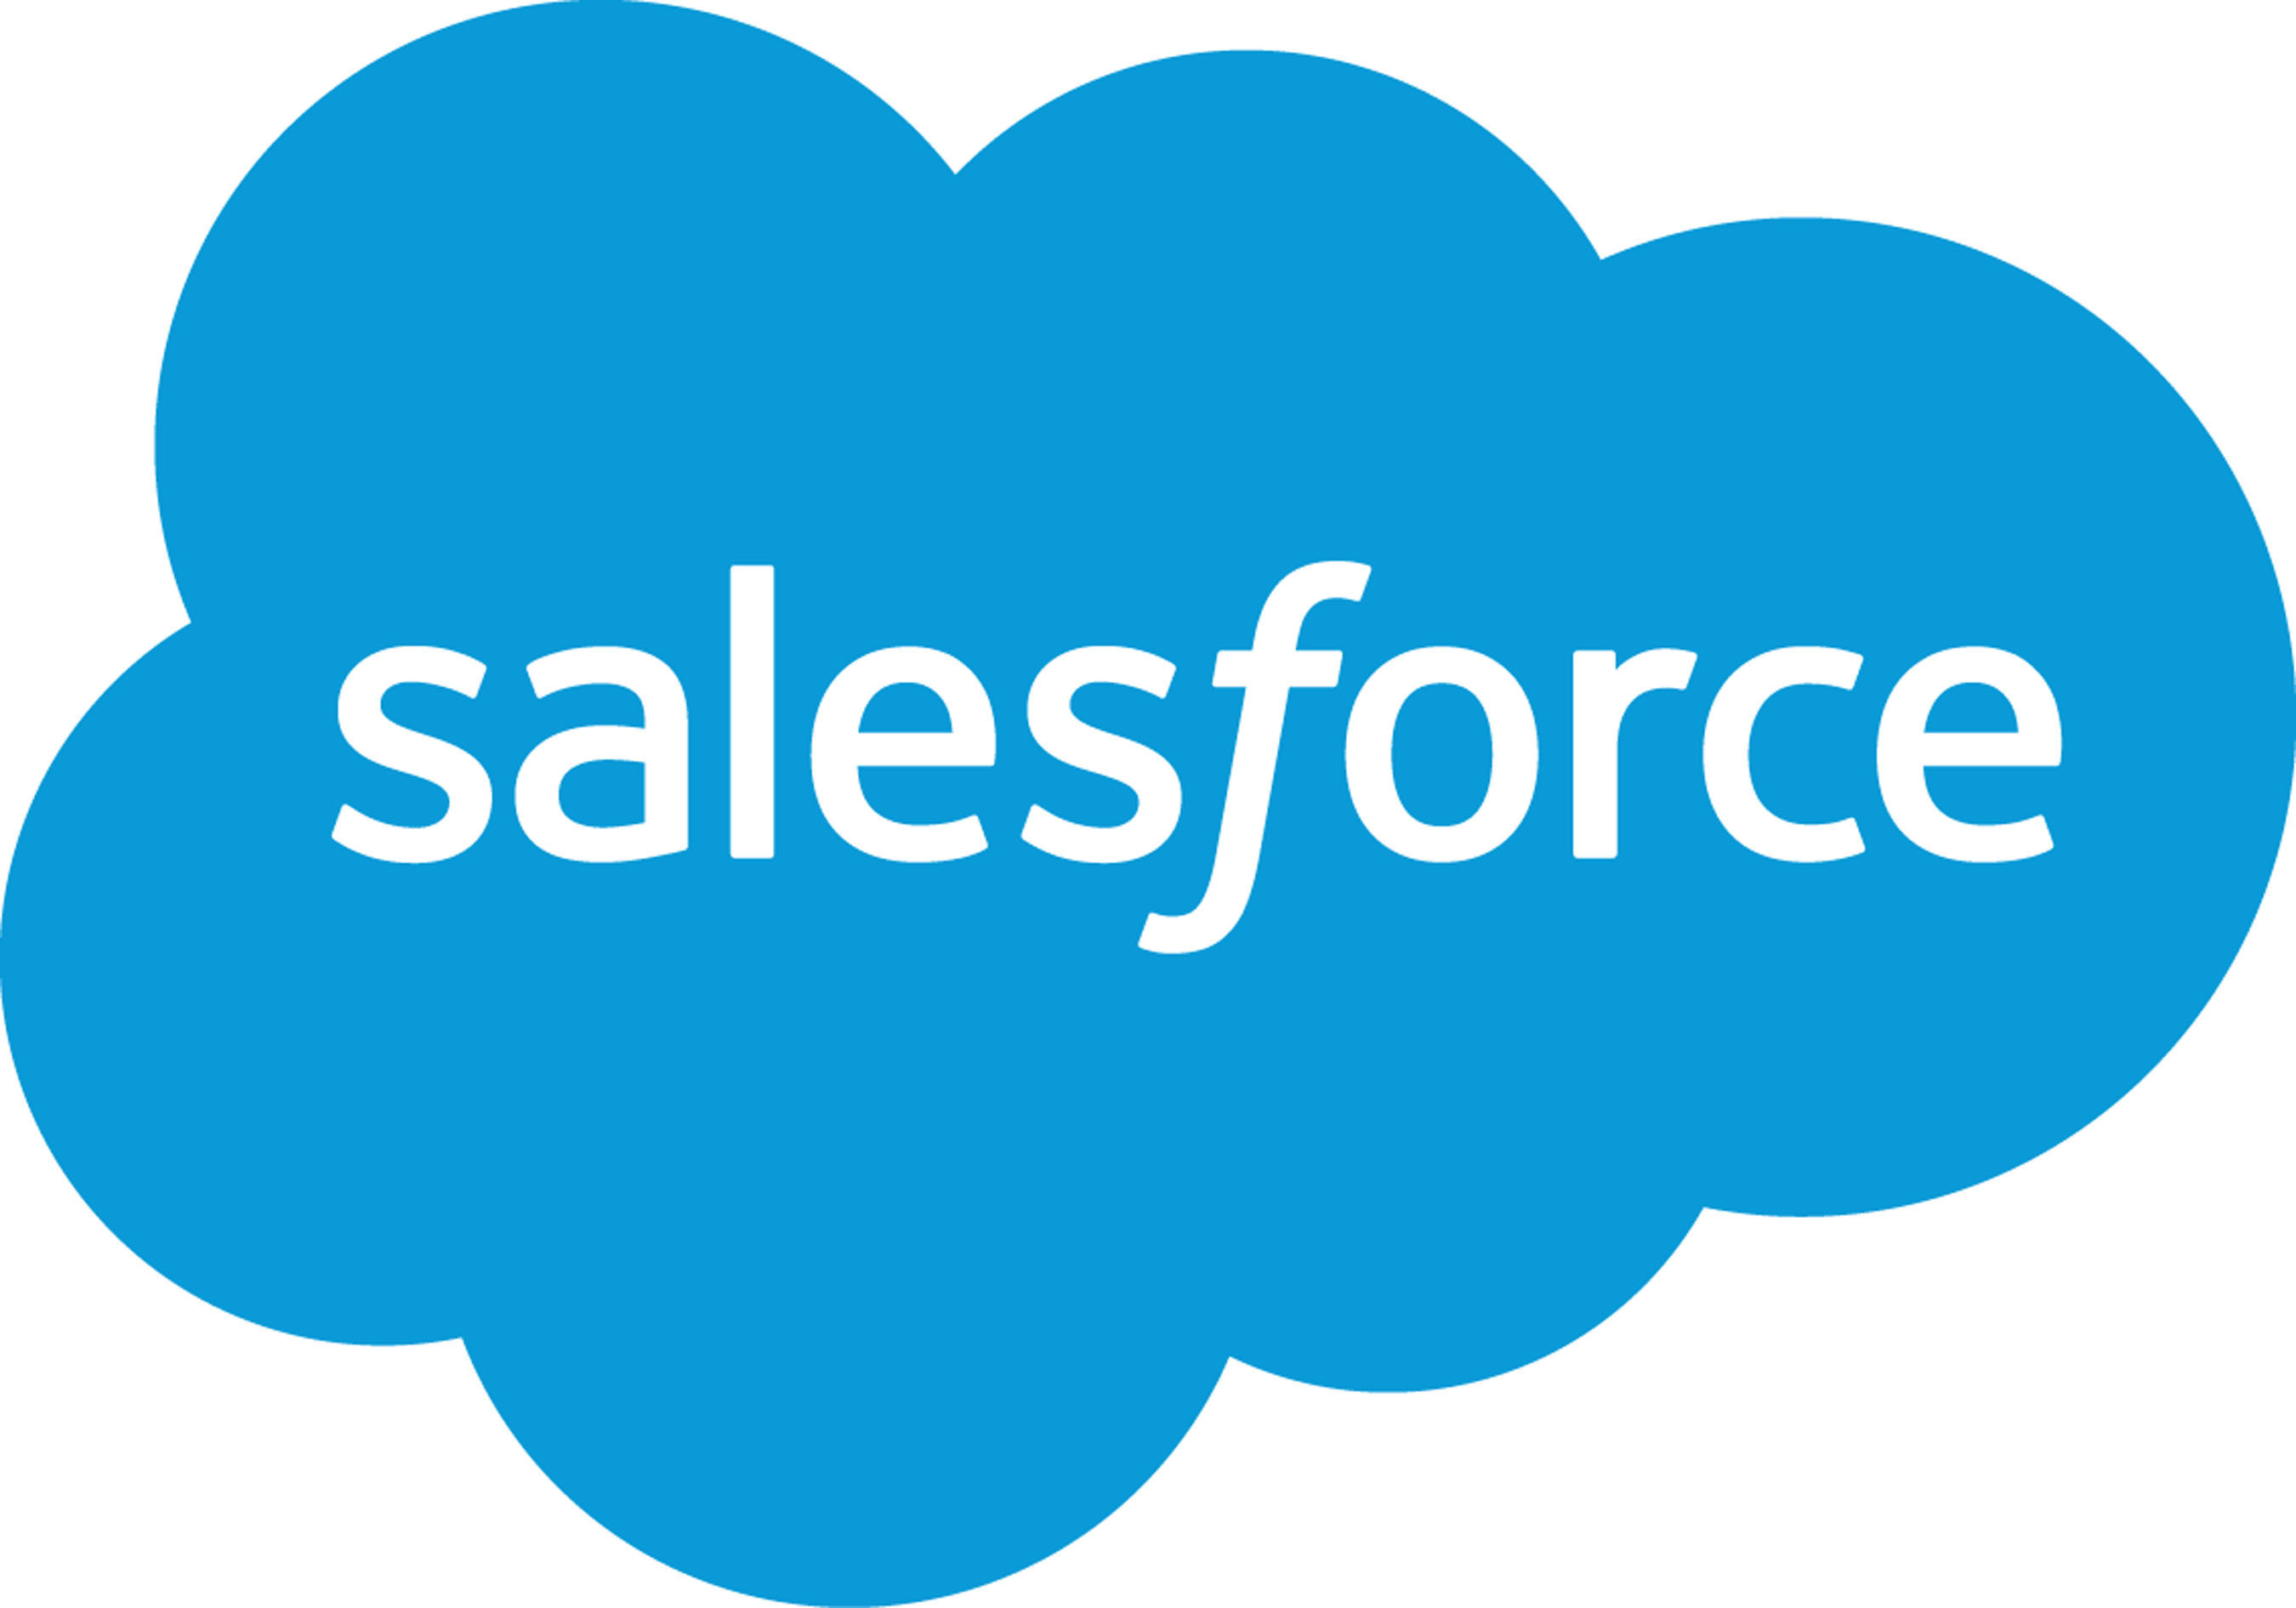 Salesforce _logo_2_11_19